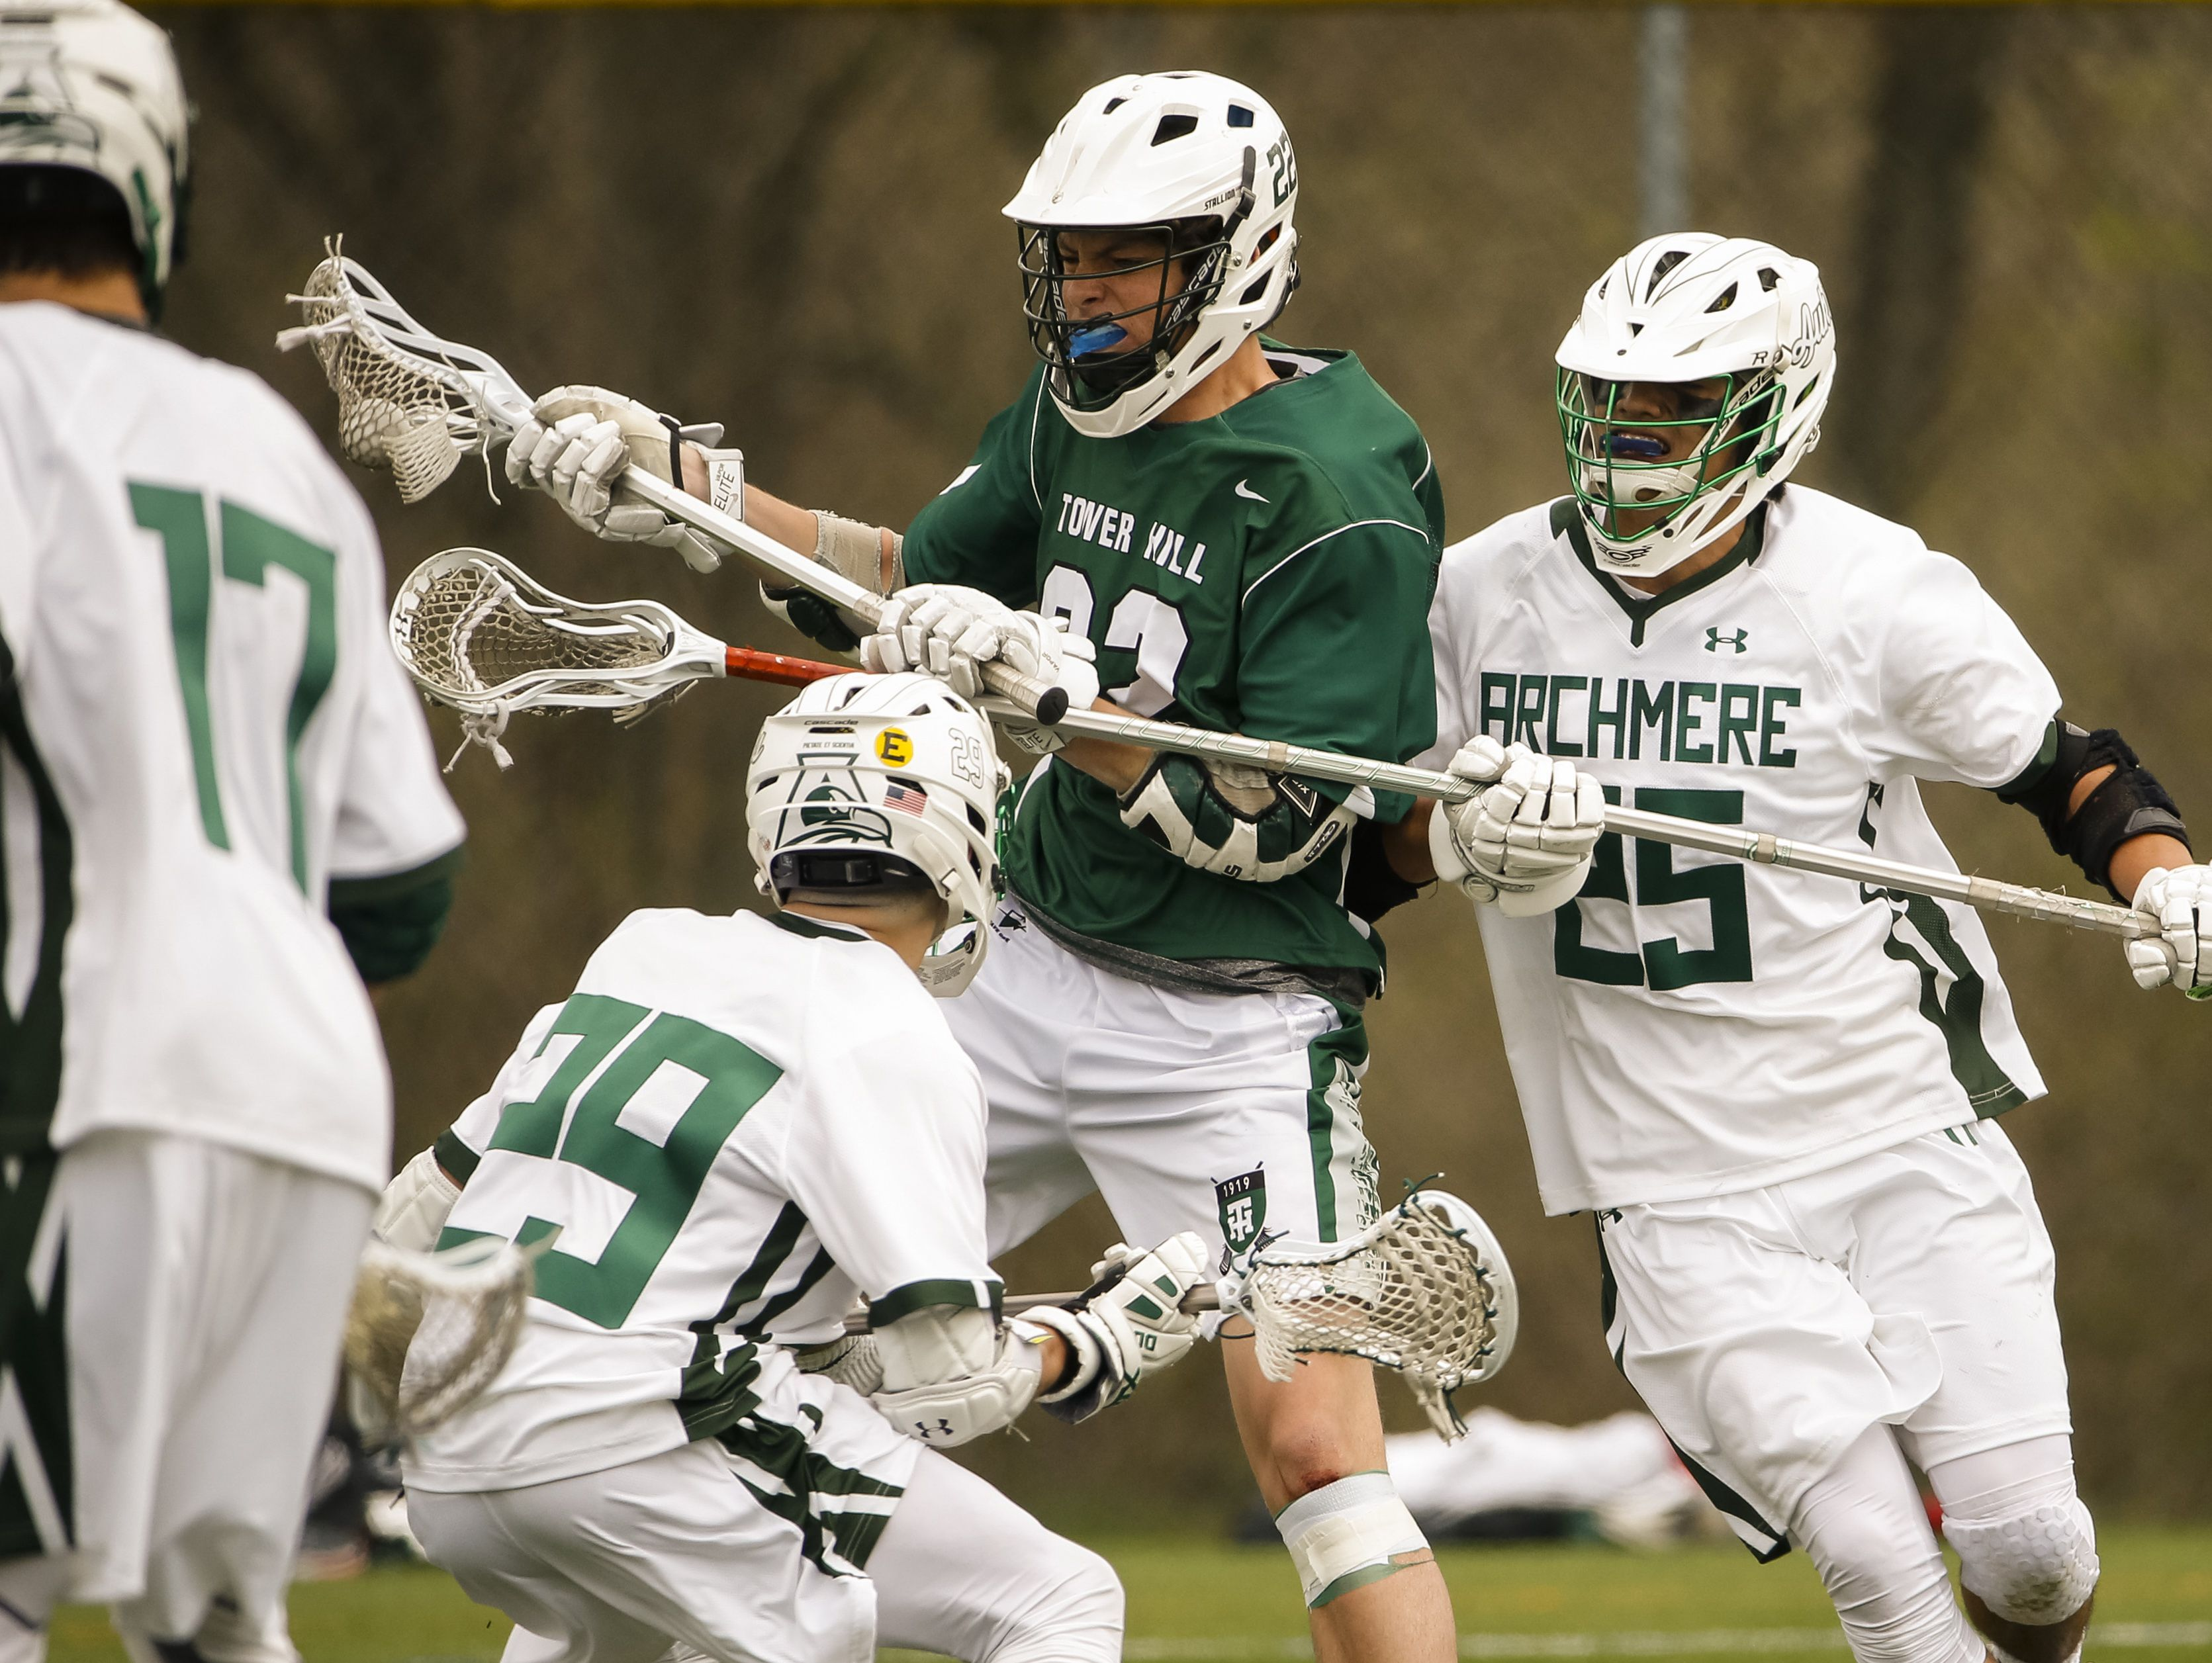 Tower Hill's William Corroon (center) works in his offensive zone in the second half of Archmere's 12-7 win Saturday. 22 25